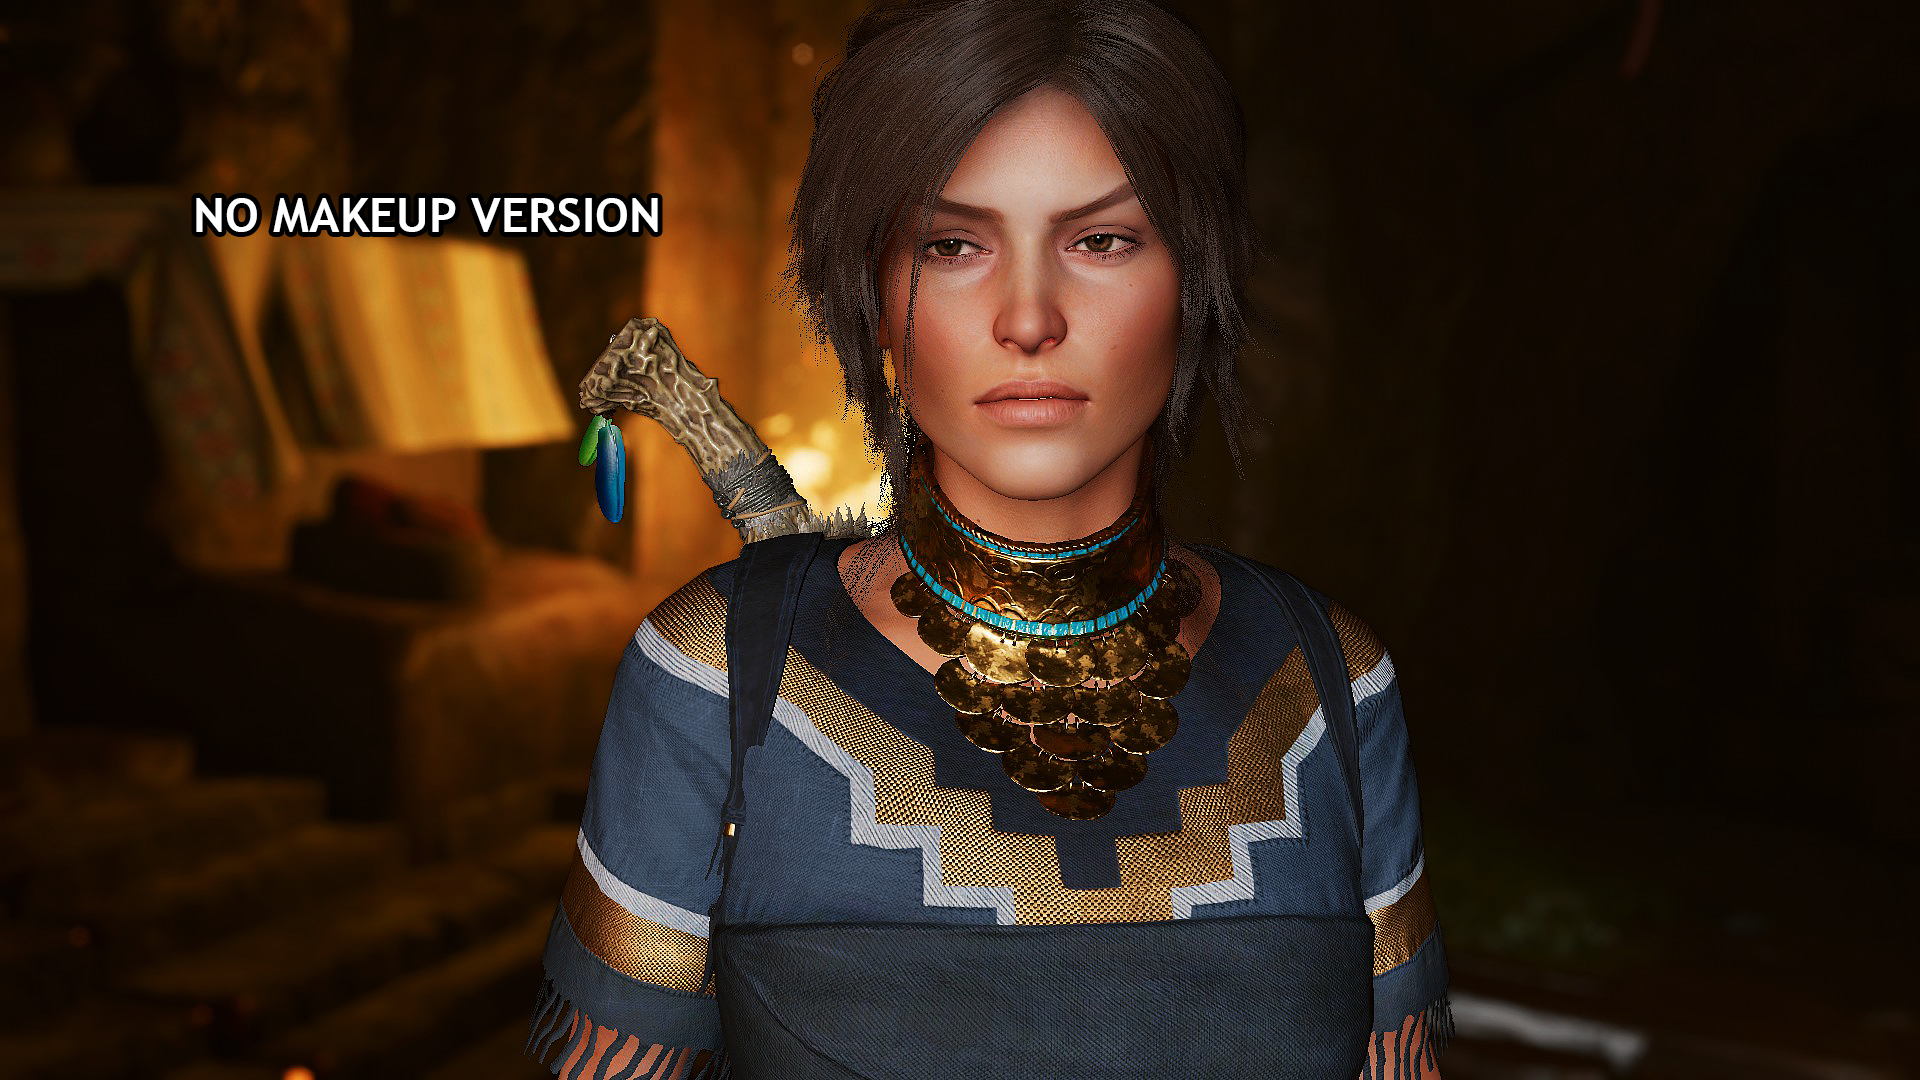 Shadow of the Tomb Raider mod adds see-through clothes